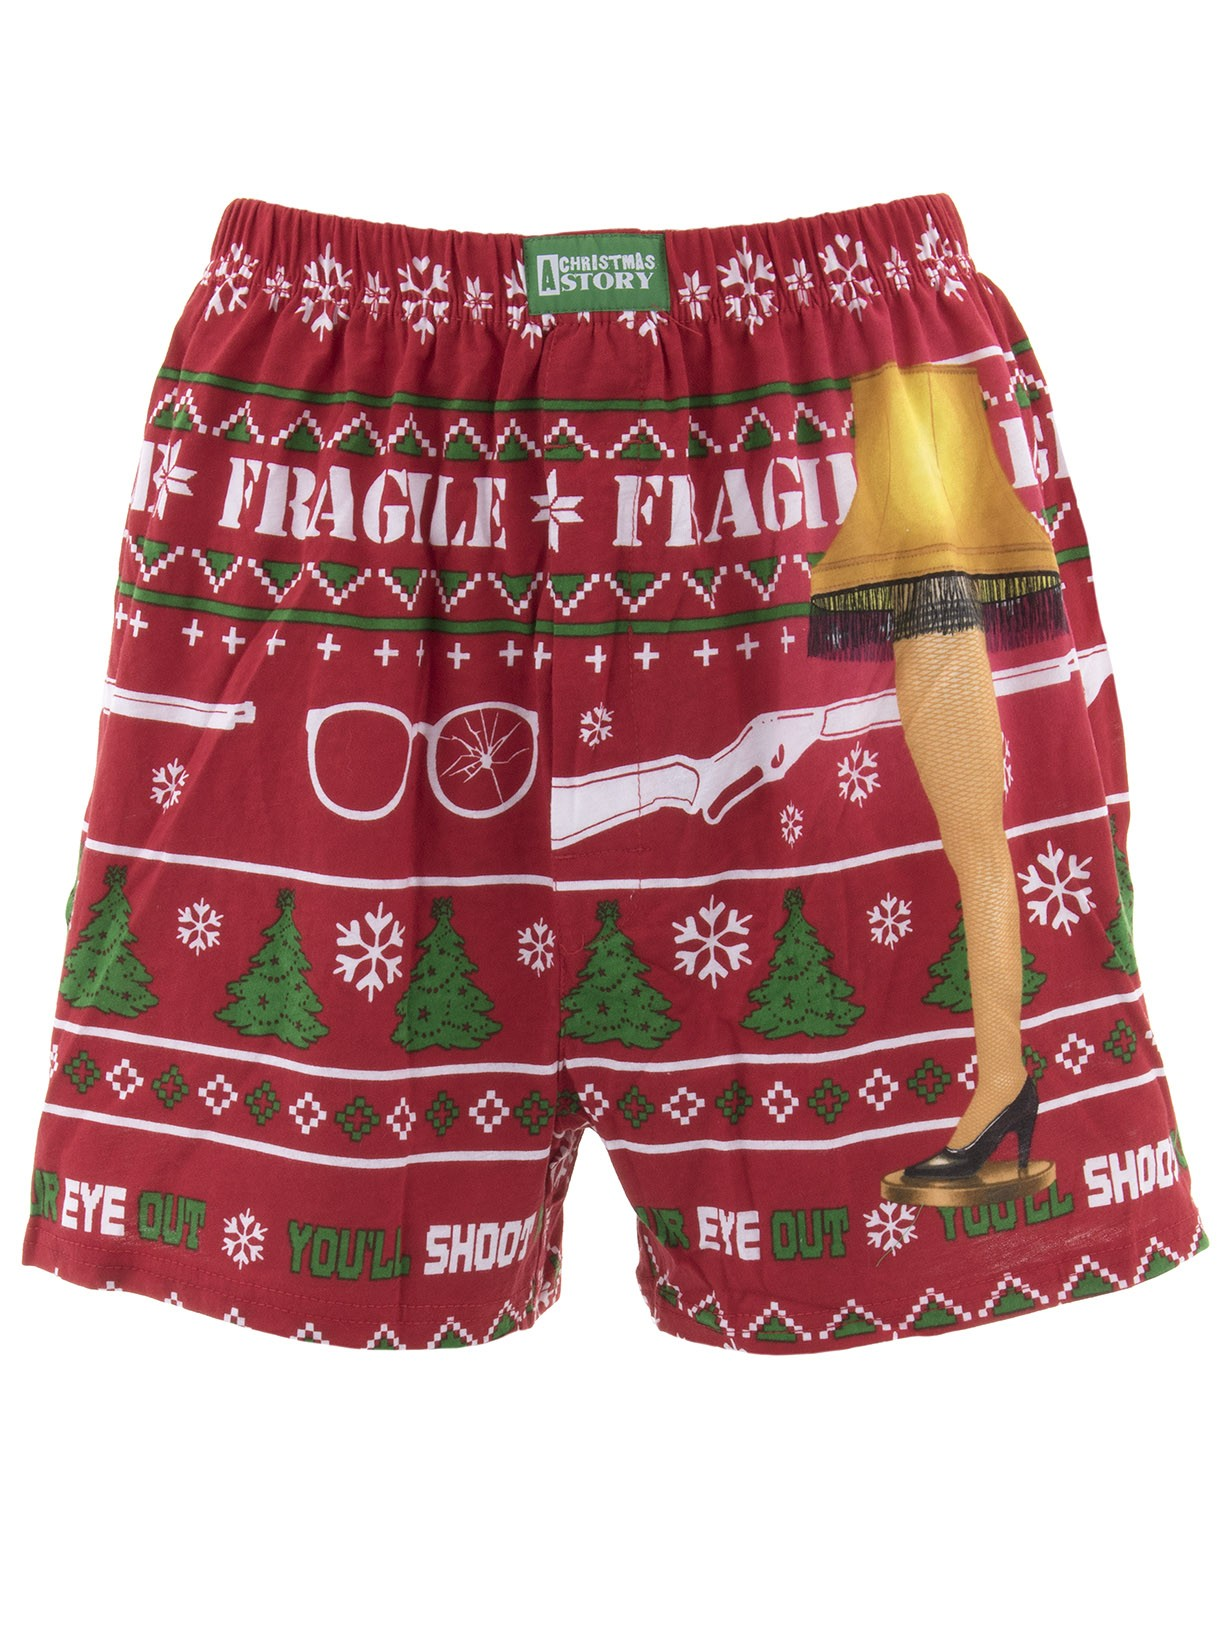 A Christmas Story - A Christmas Story Men's Red Cotton Boxer Shorts